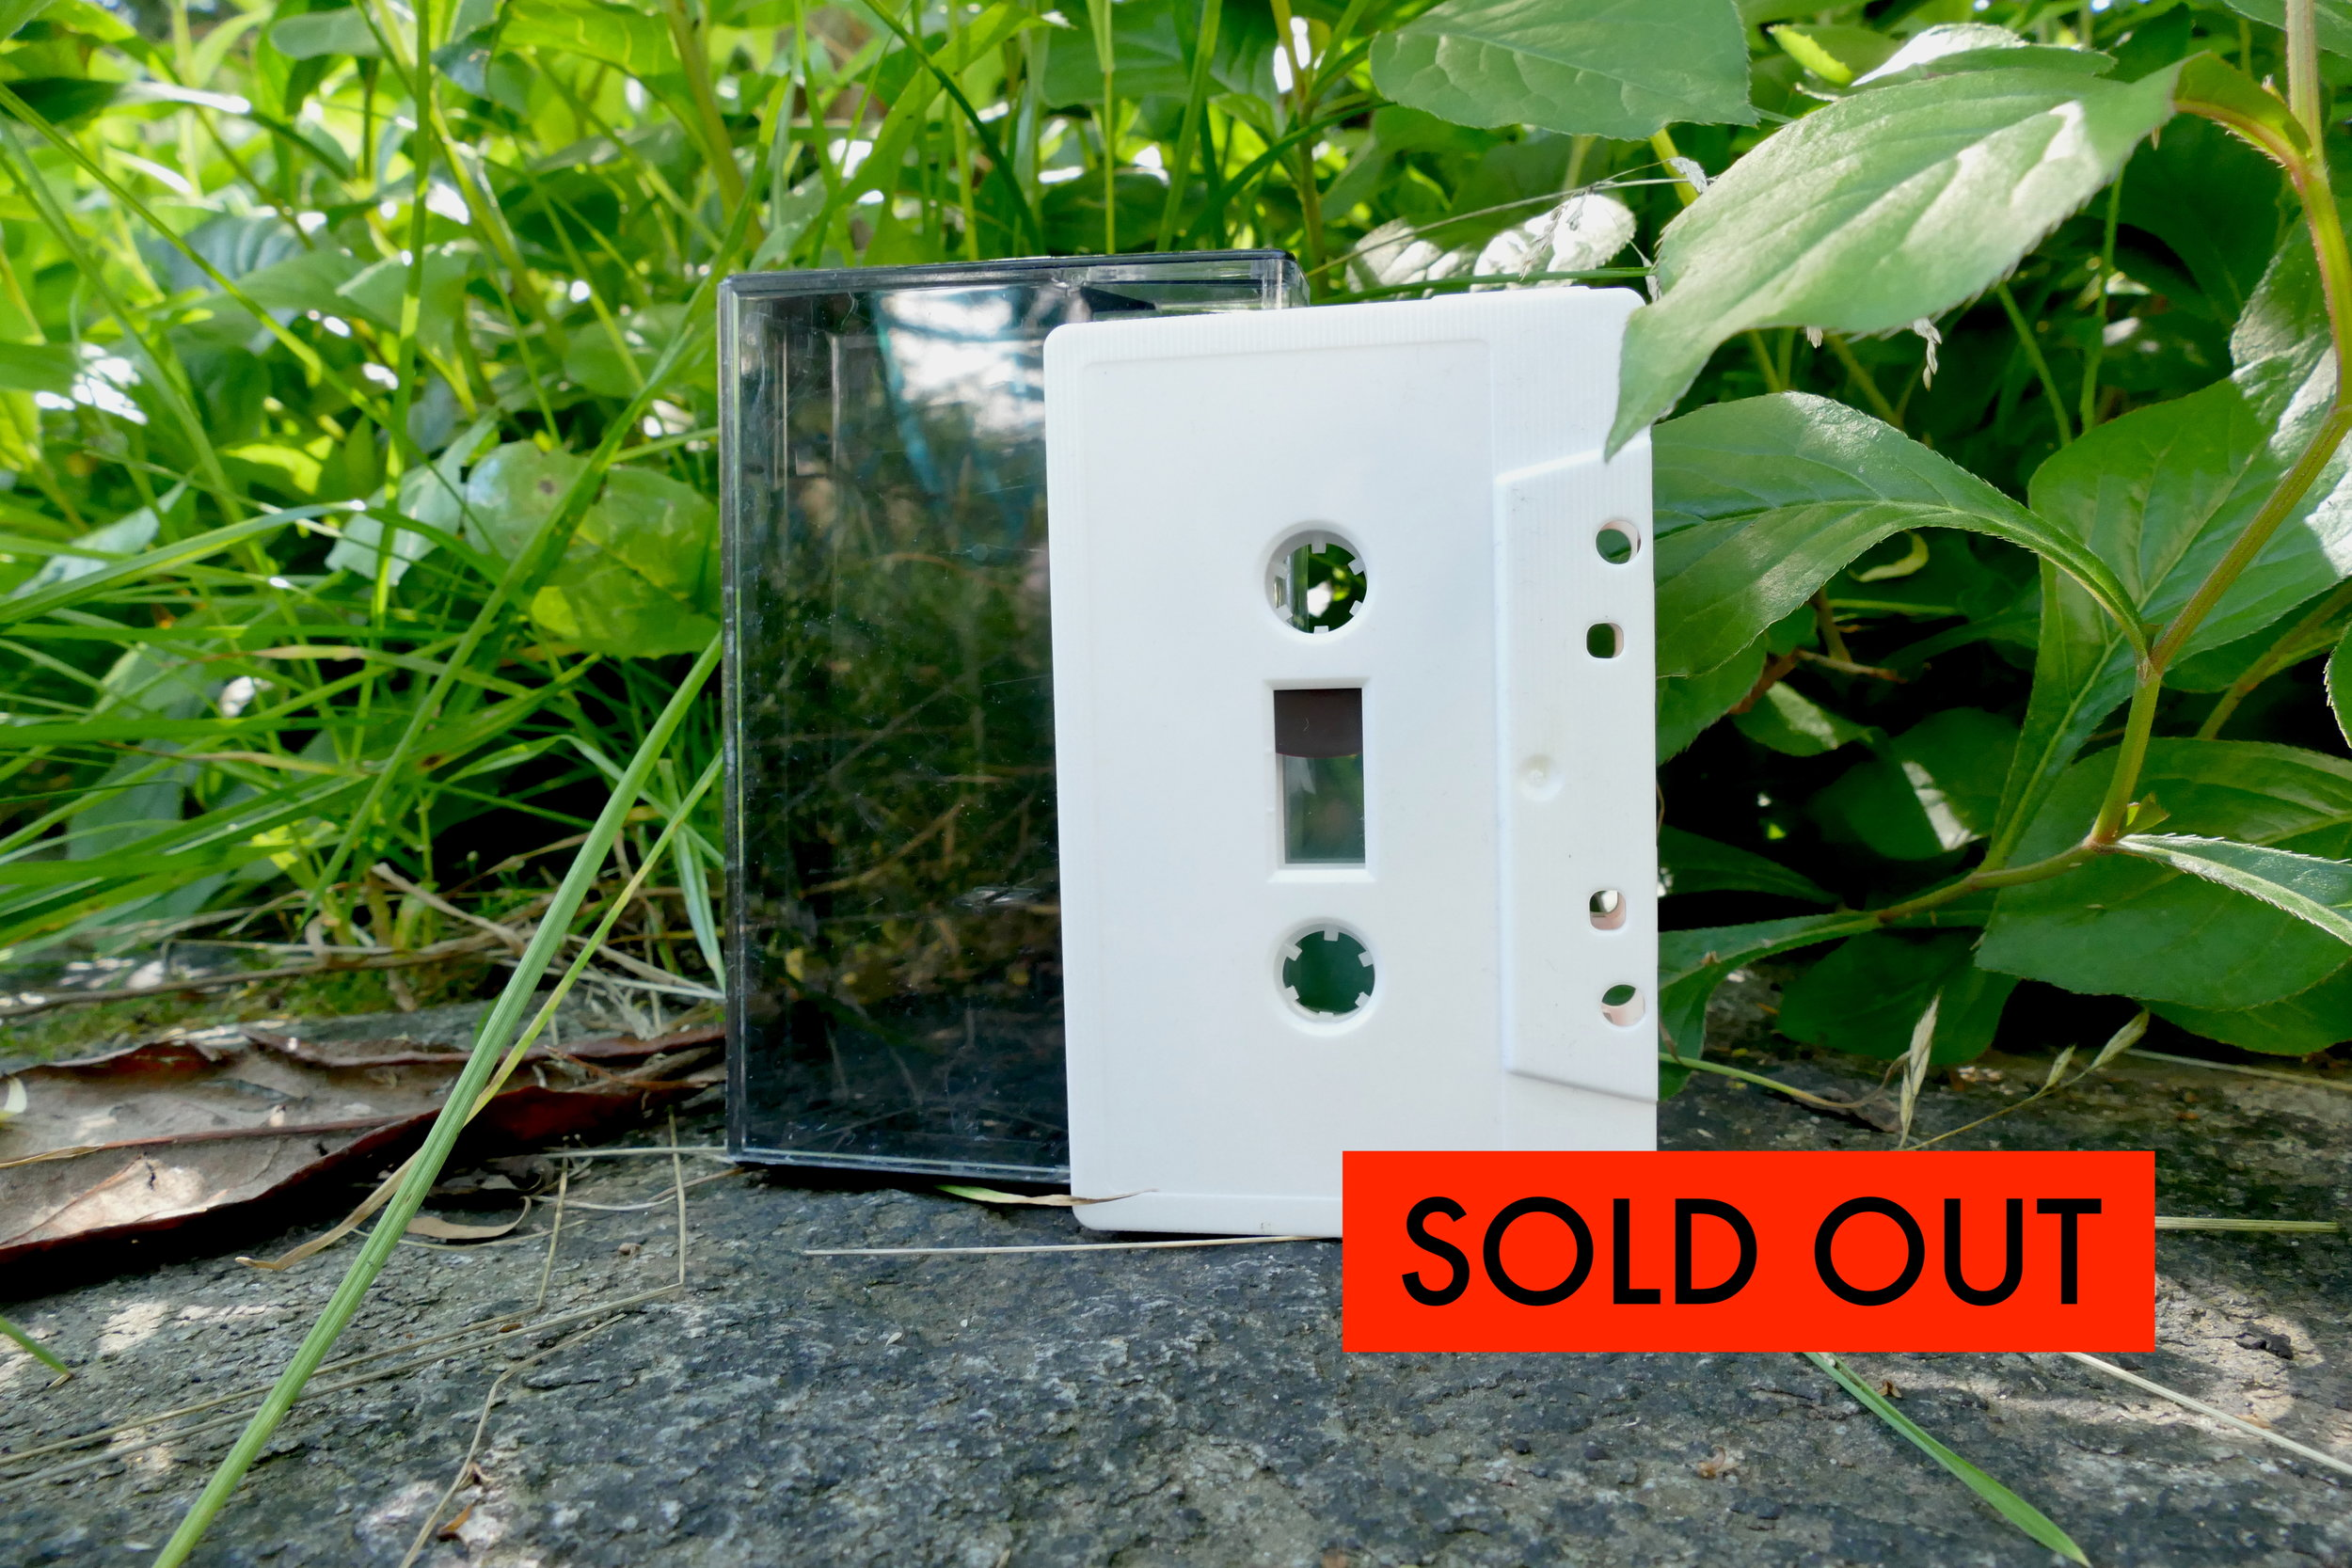 SOLD OUT - ITAPE50 Limited Edition